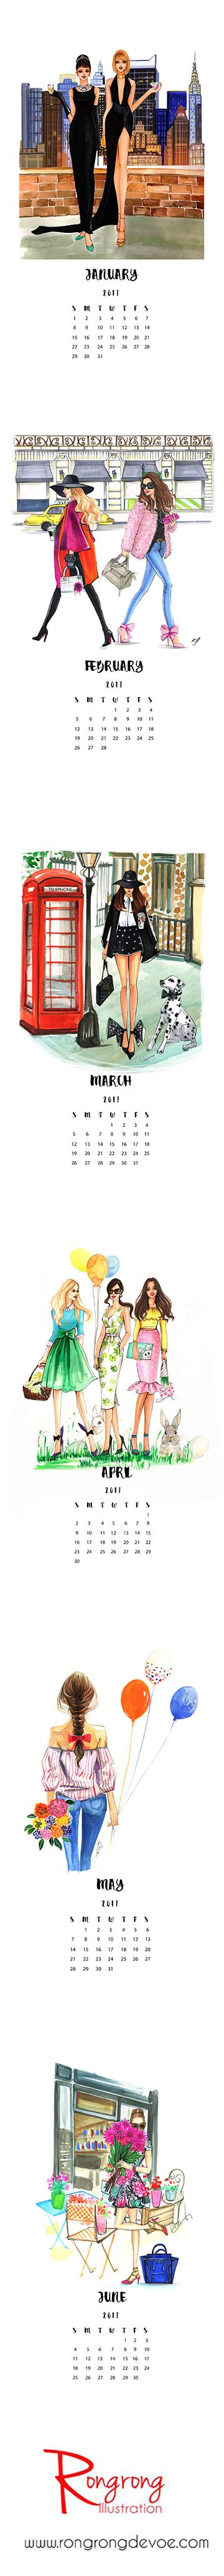 Illustrated fashion calendar by Houston fashion illustrator Rongrong DeVoe, hand illustrated and made in USA, check the calendar at www.rongrongillustration.etsy.com